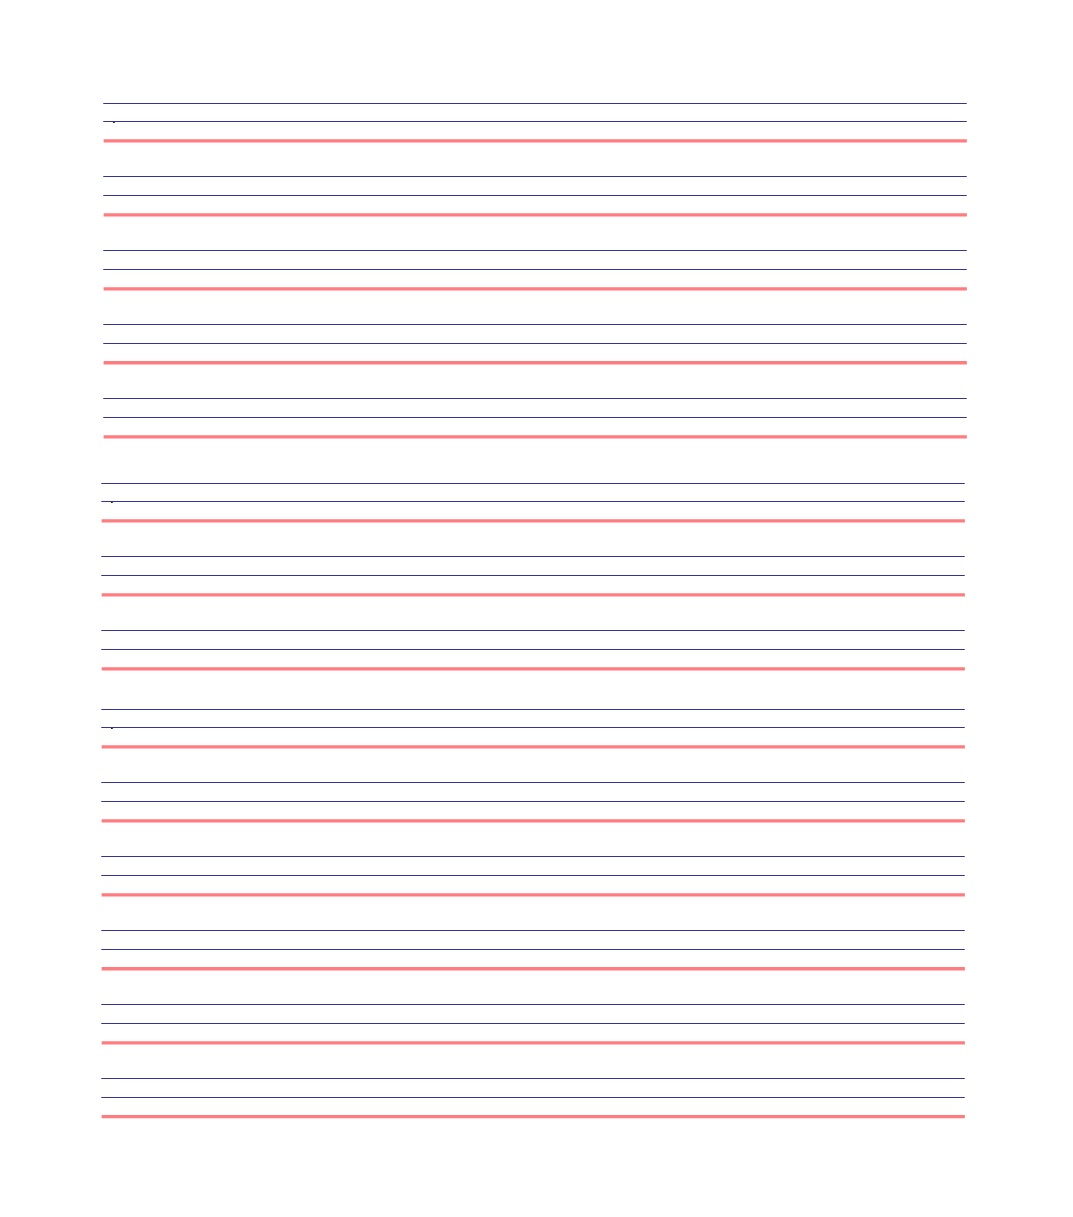 32 Printable Lined Paper Templates ᐅ Template Lab Intended For Notebook Paper Template For Word 2010